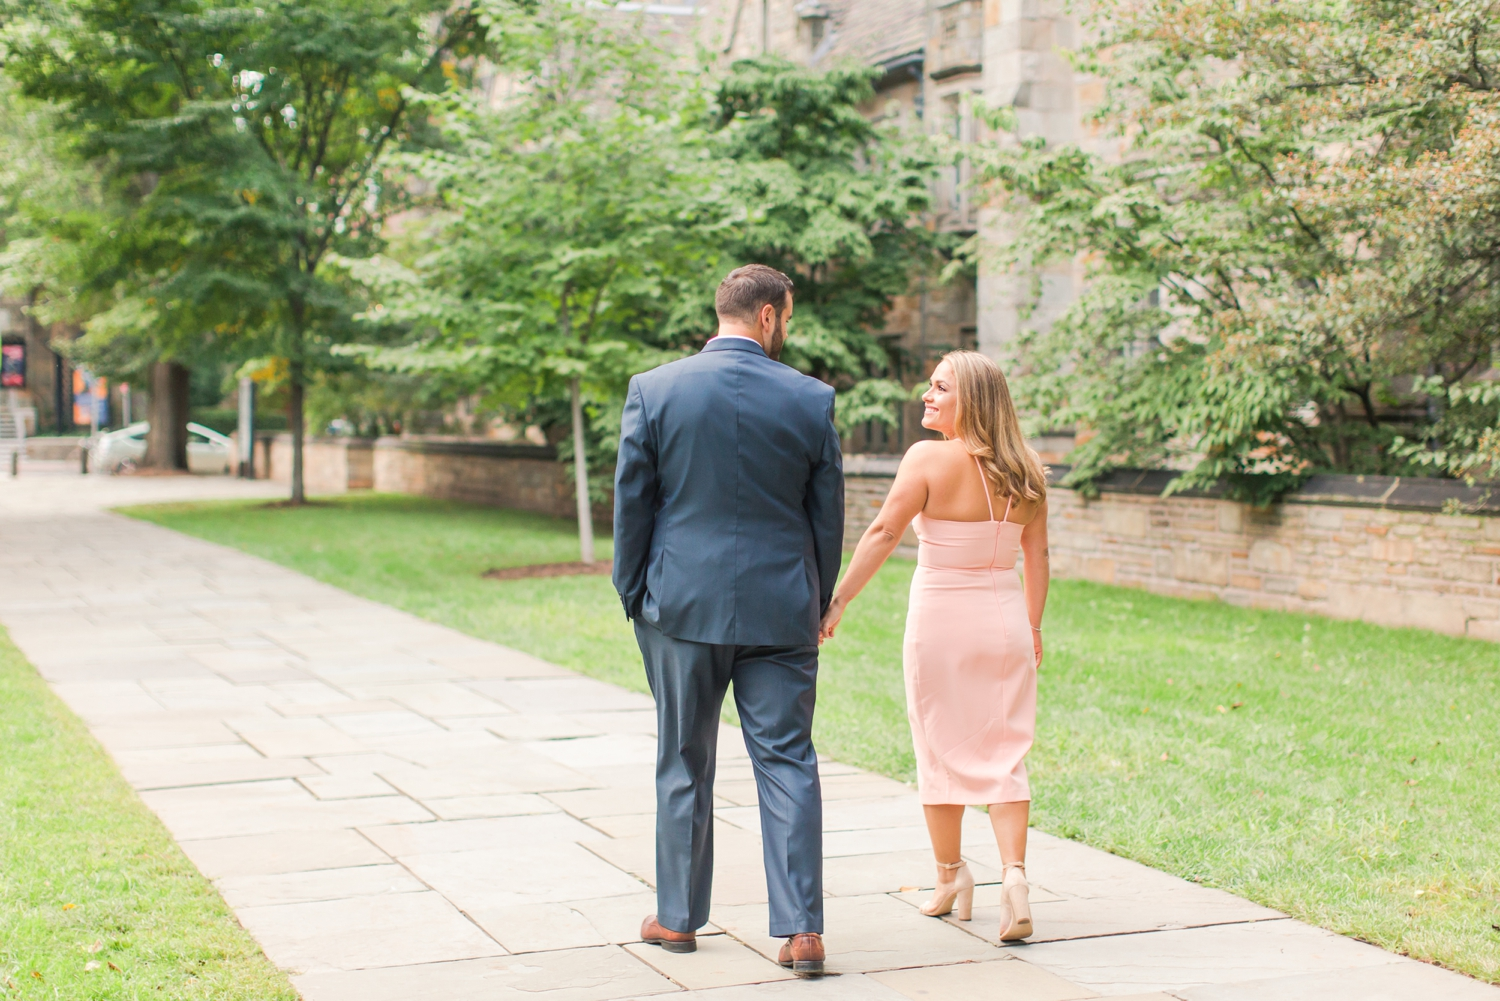 yale-university-engagement-session-new-haven-connecticut-nyc-wedding-photographer-shaina-lee-photography-photo-4.jpg